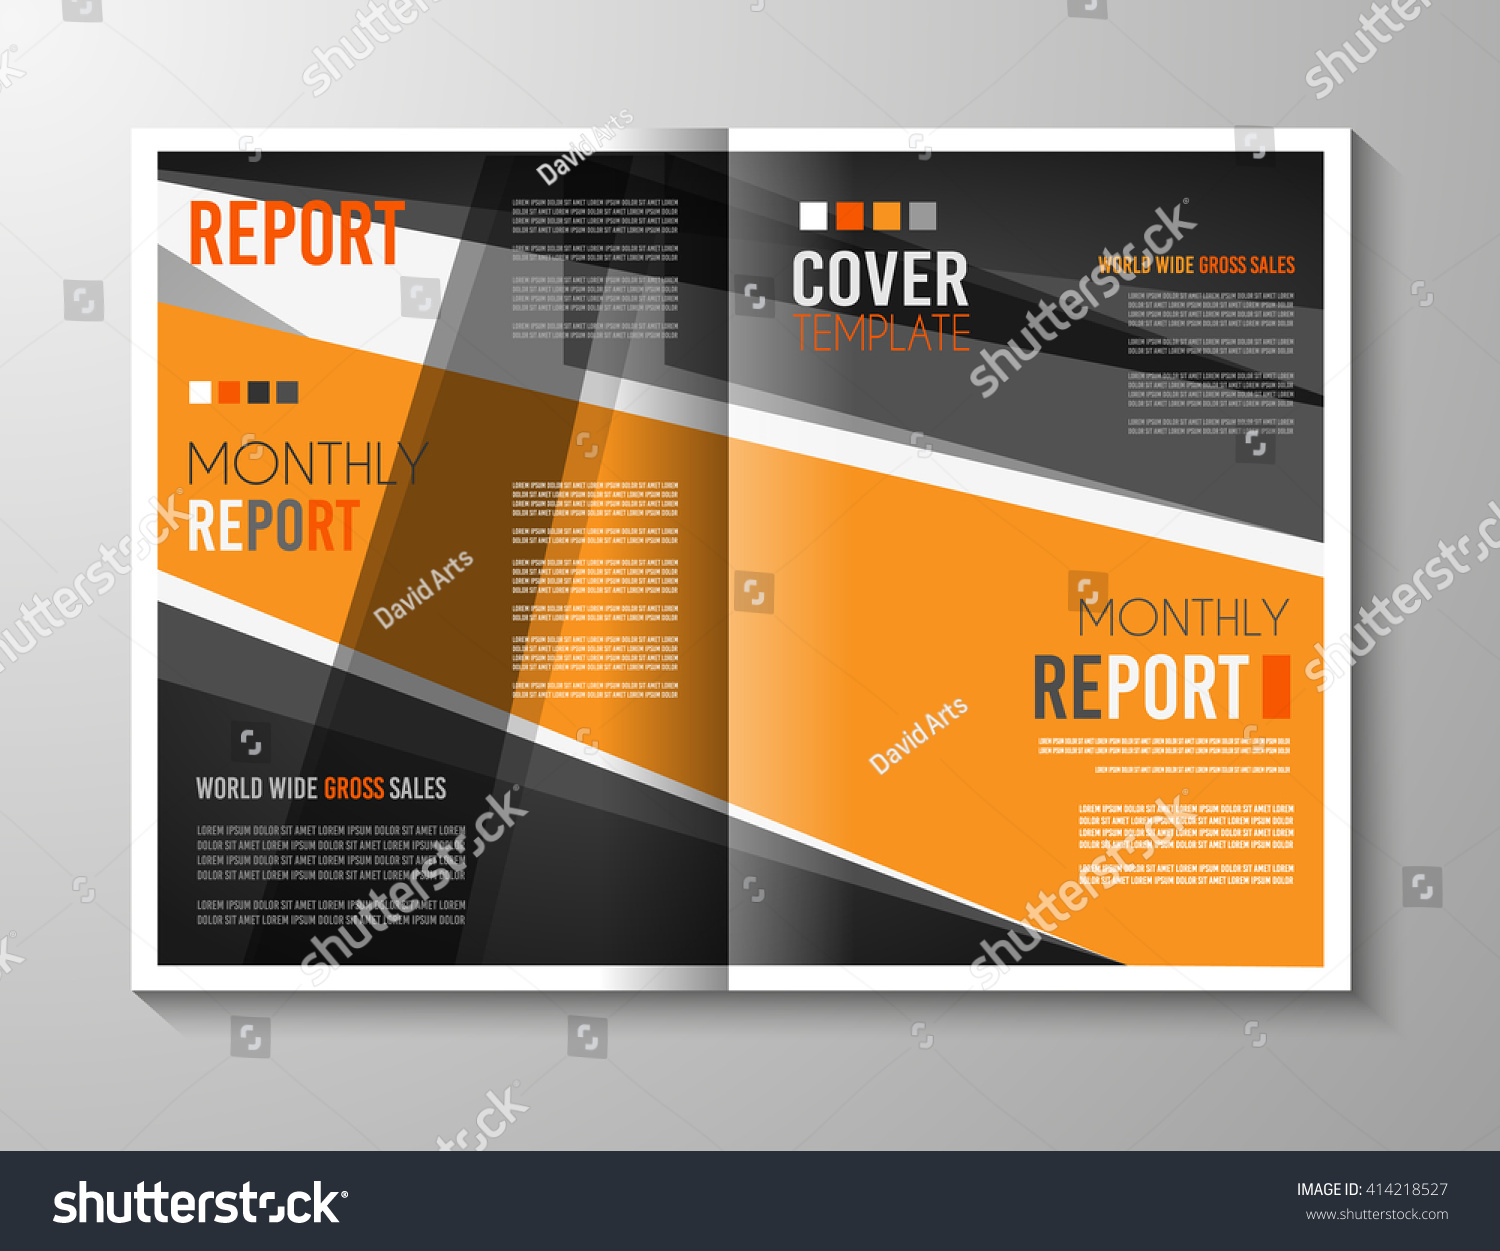 brochure template flyer design or depliant cover for business brochure template flyer design or depliant cover for business presentation and magazine covers annual